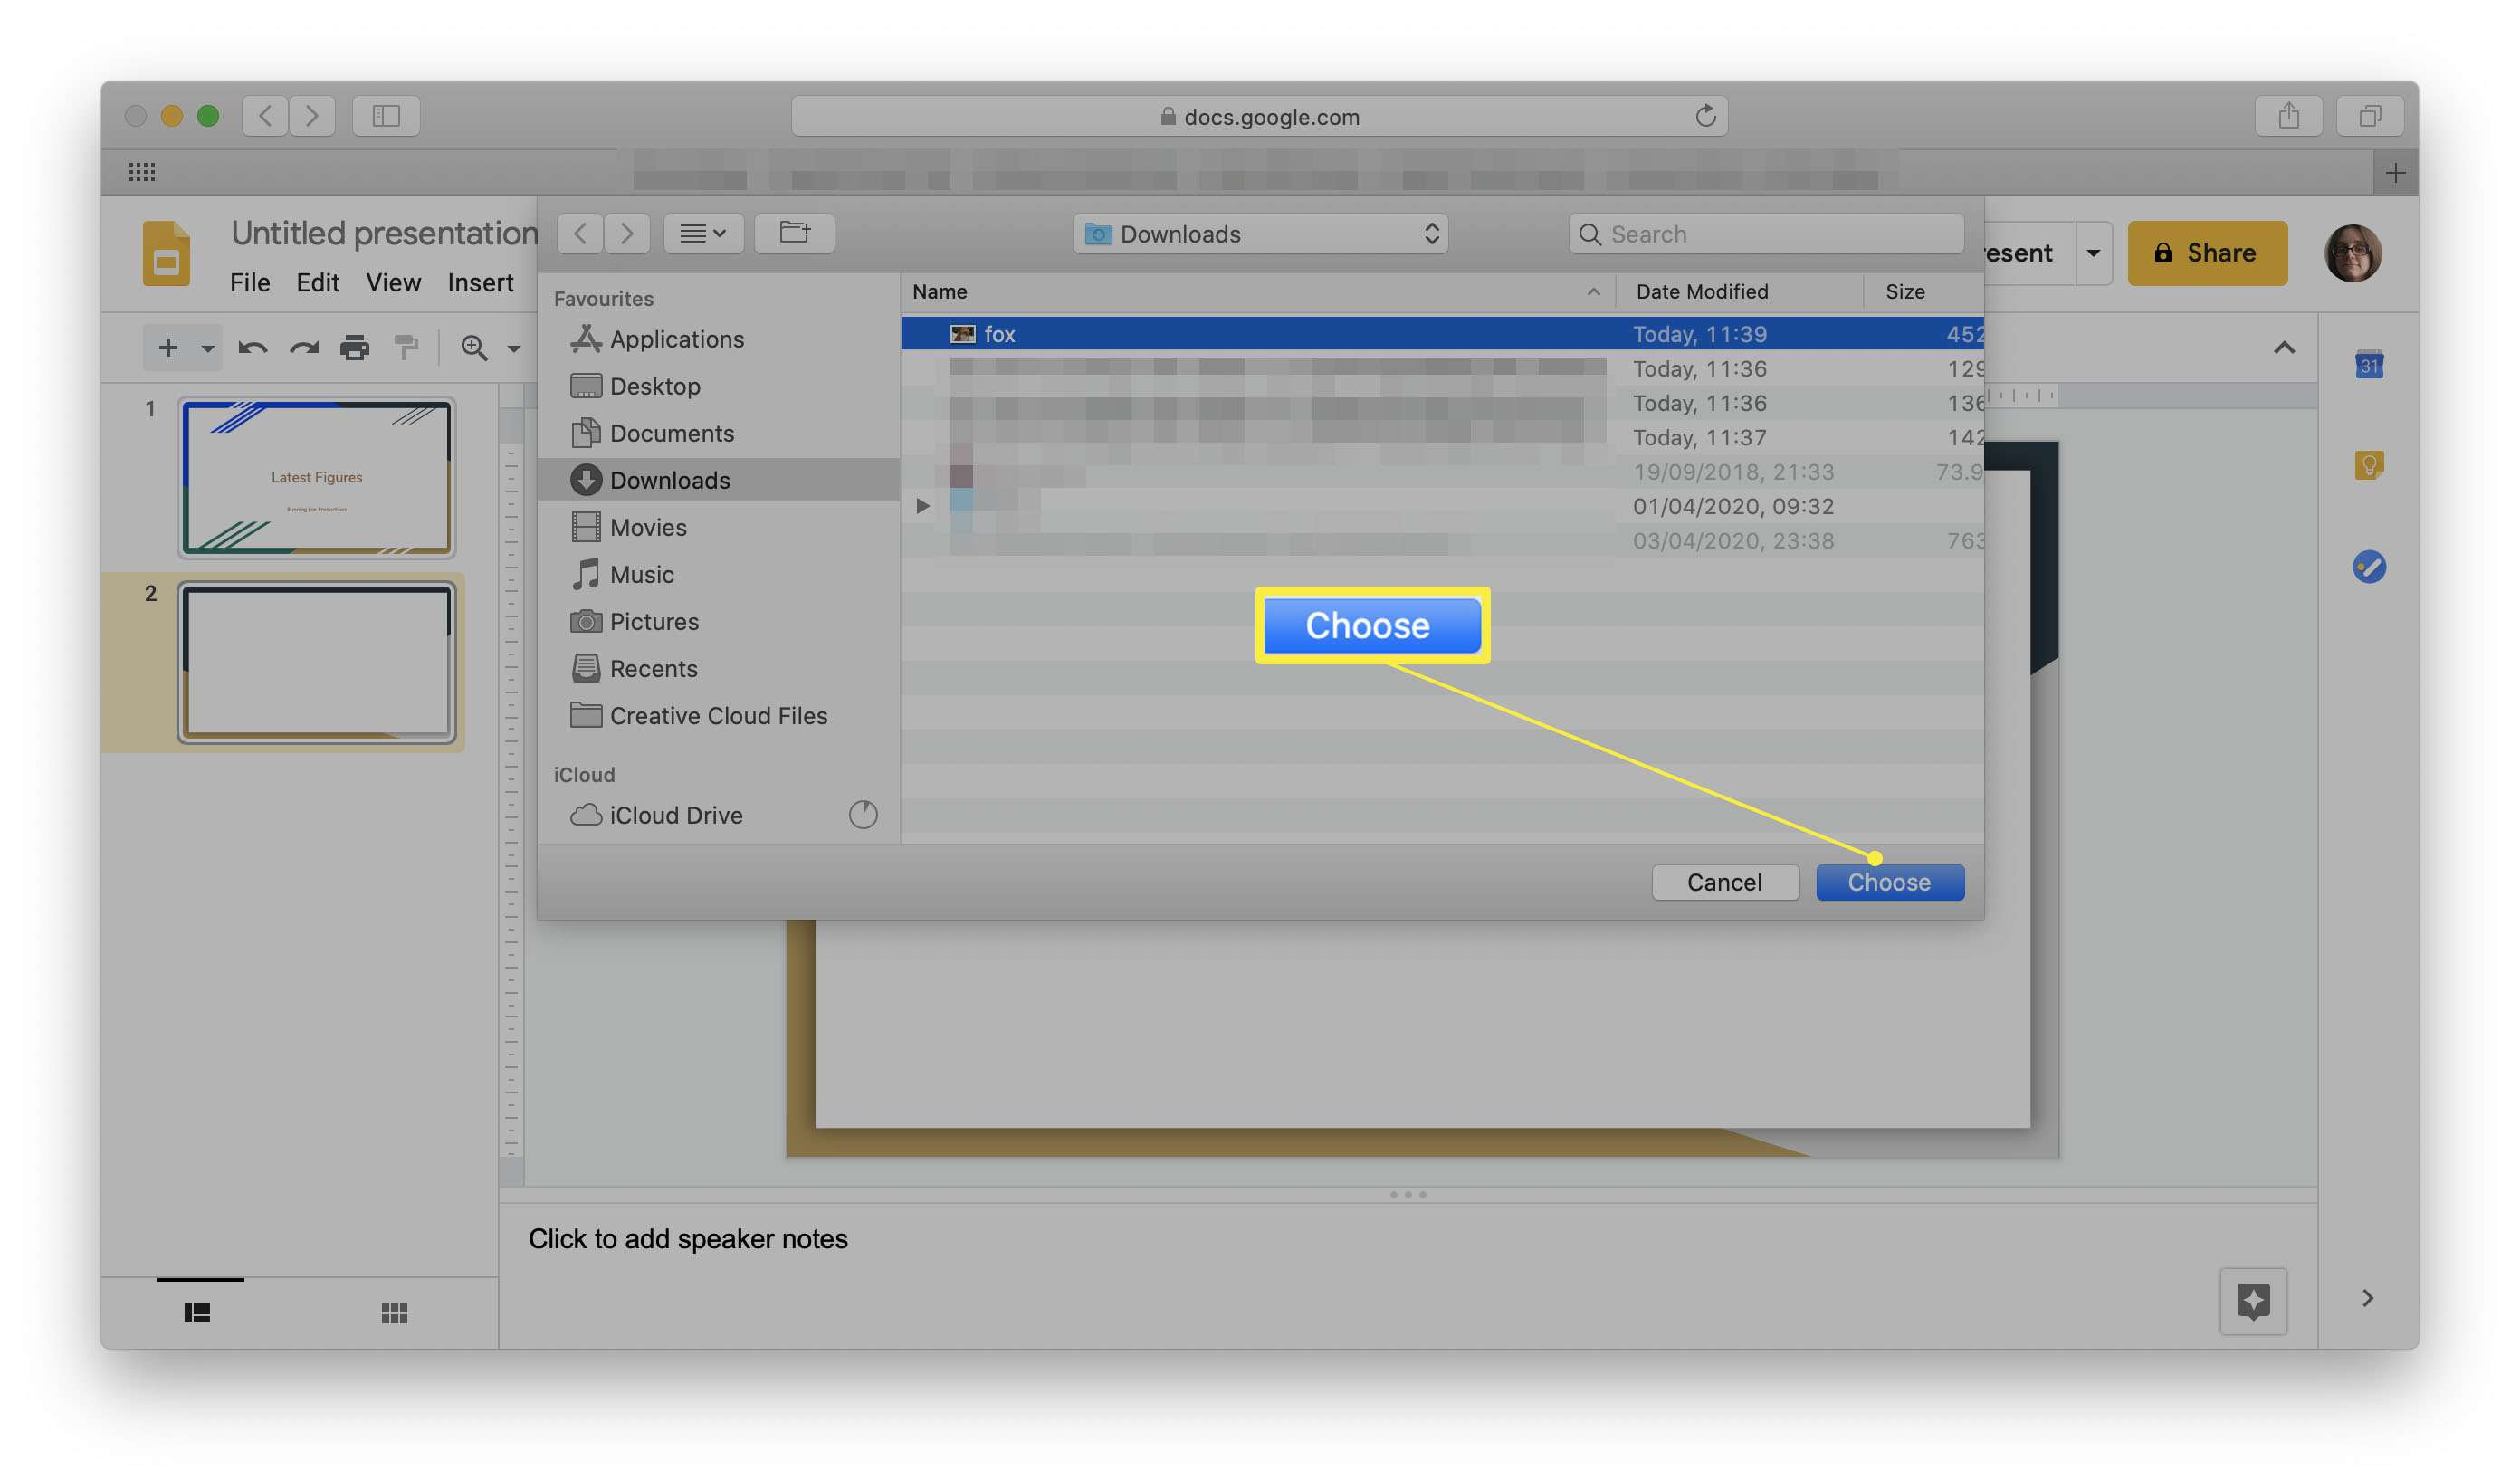 Google Slides with the image upload dialog highlighted